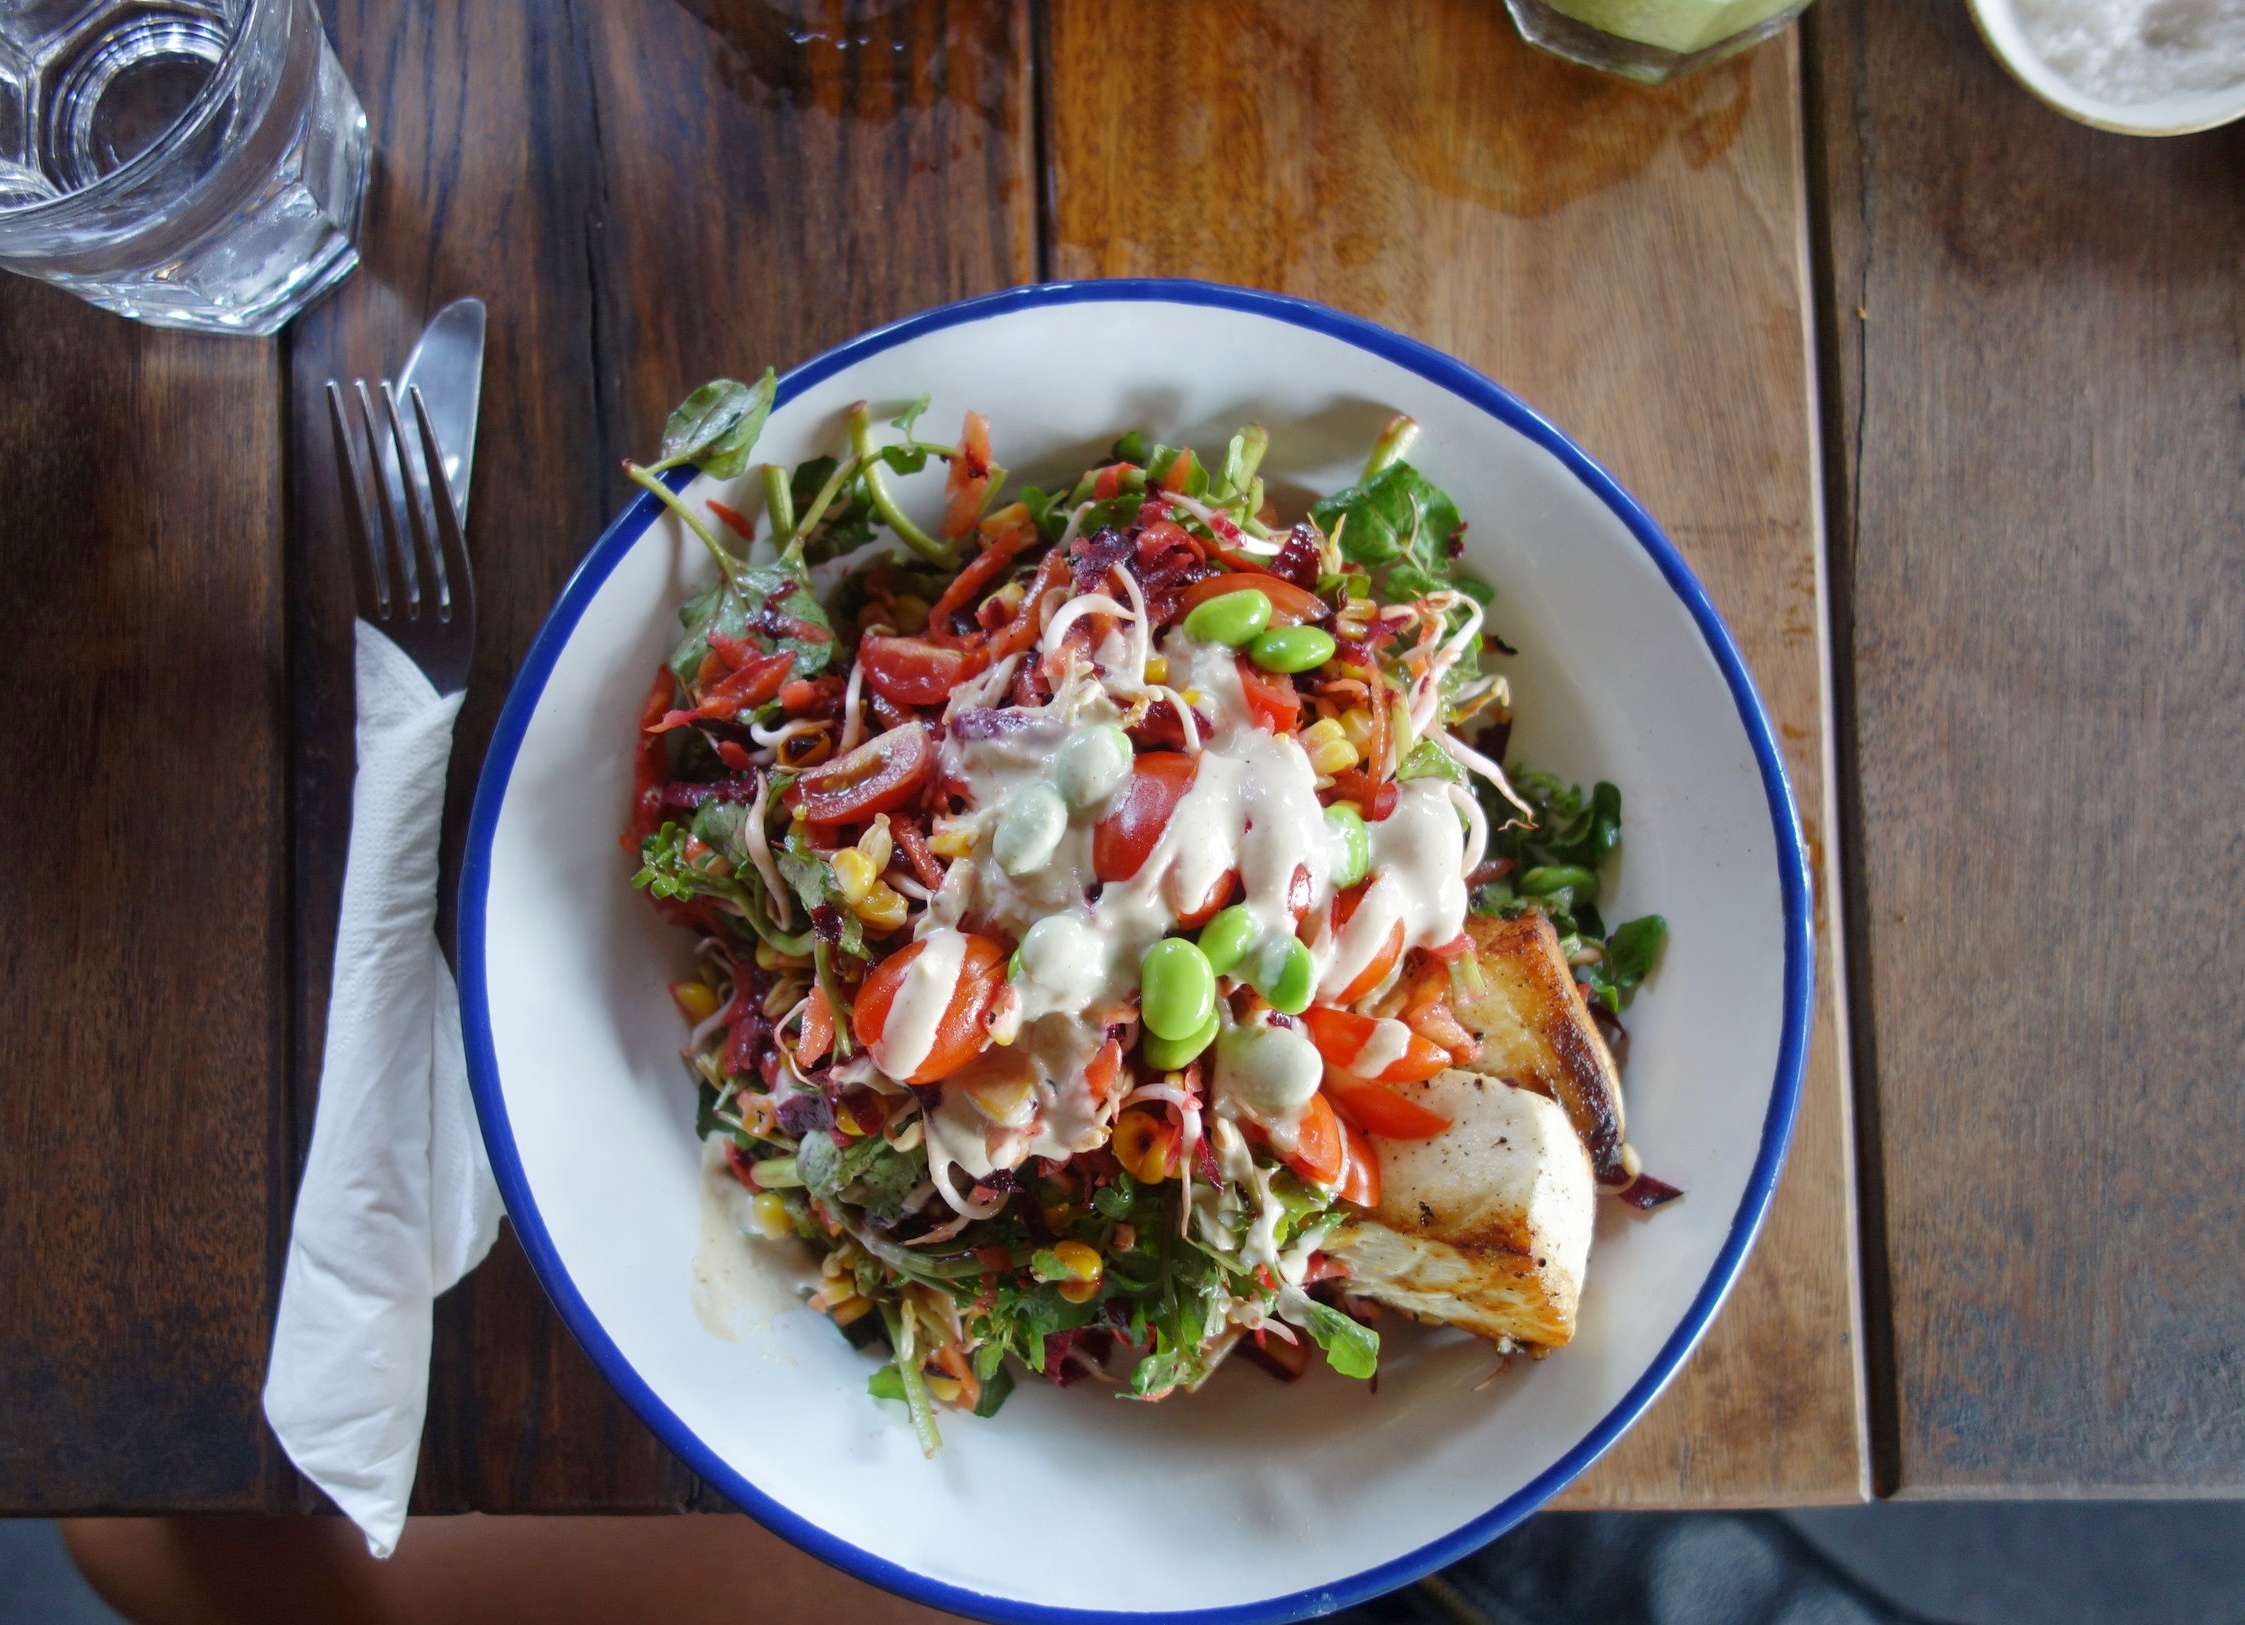 Beetroot, Carrot, Tomato & Green Salad with Barramundi & Tahini Dressing